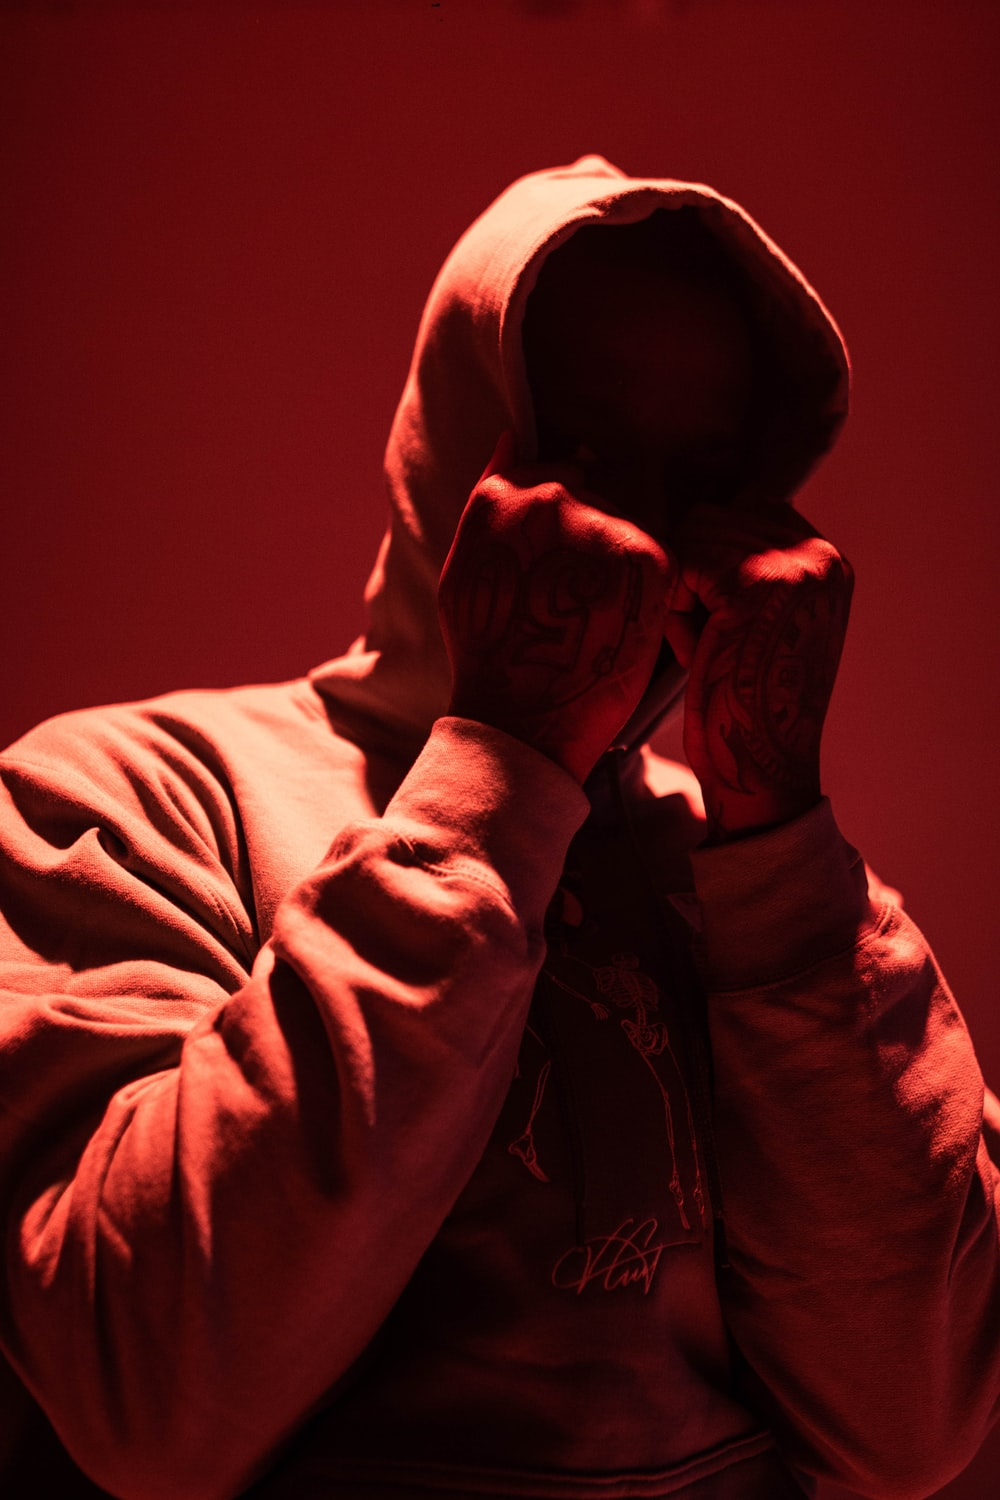 man in hoodie covering his face